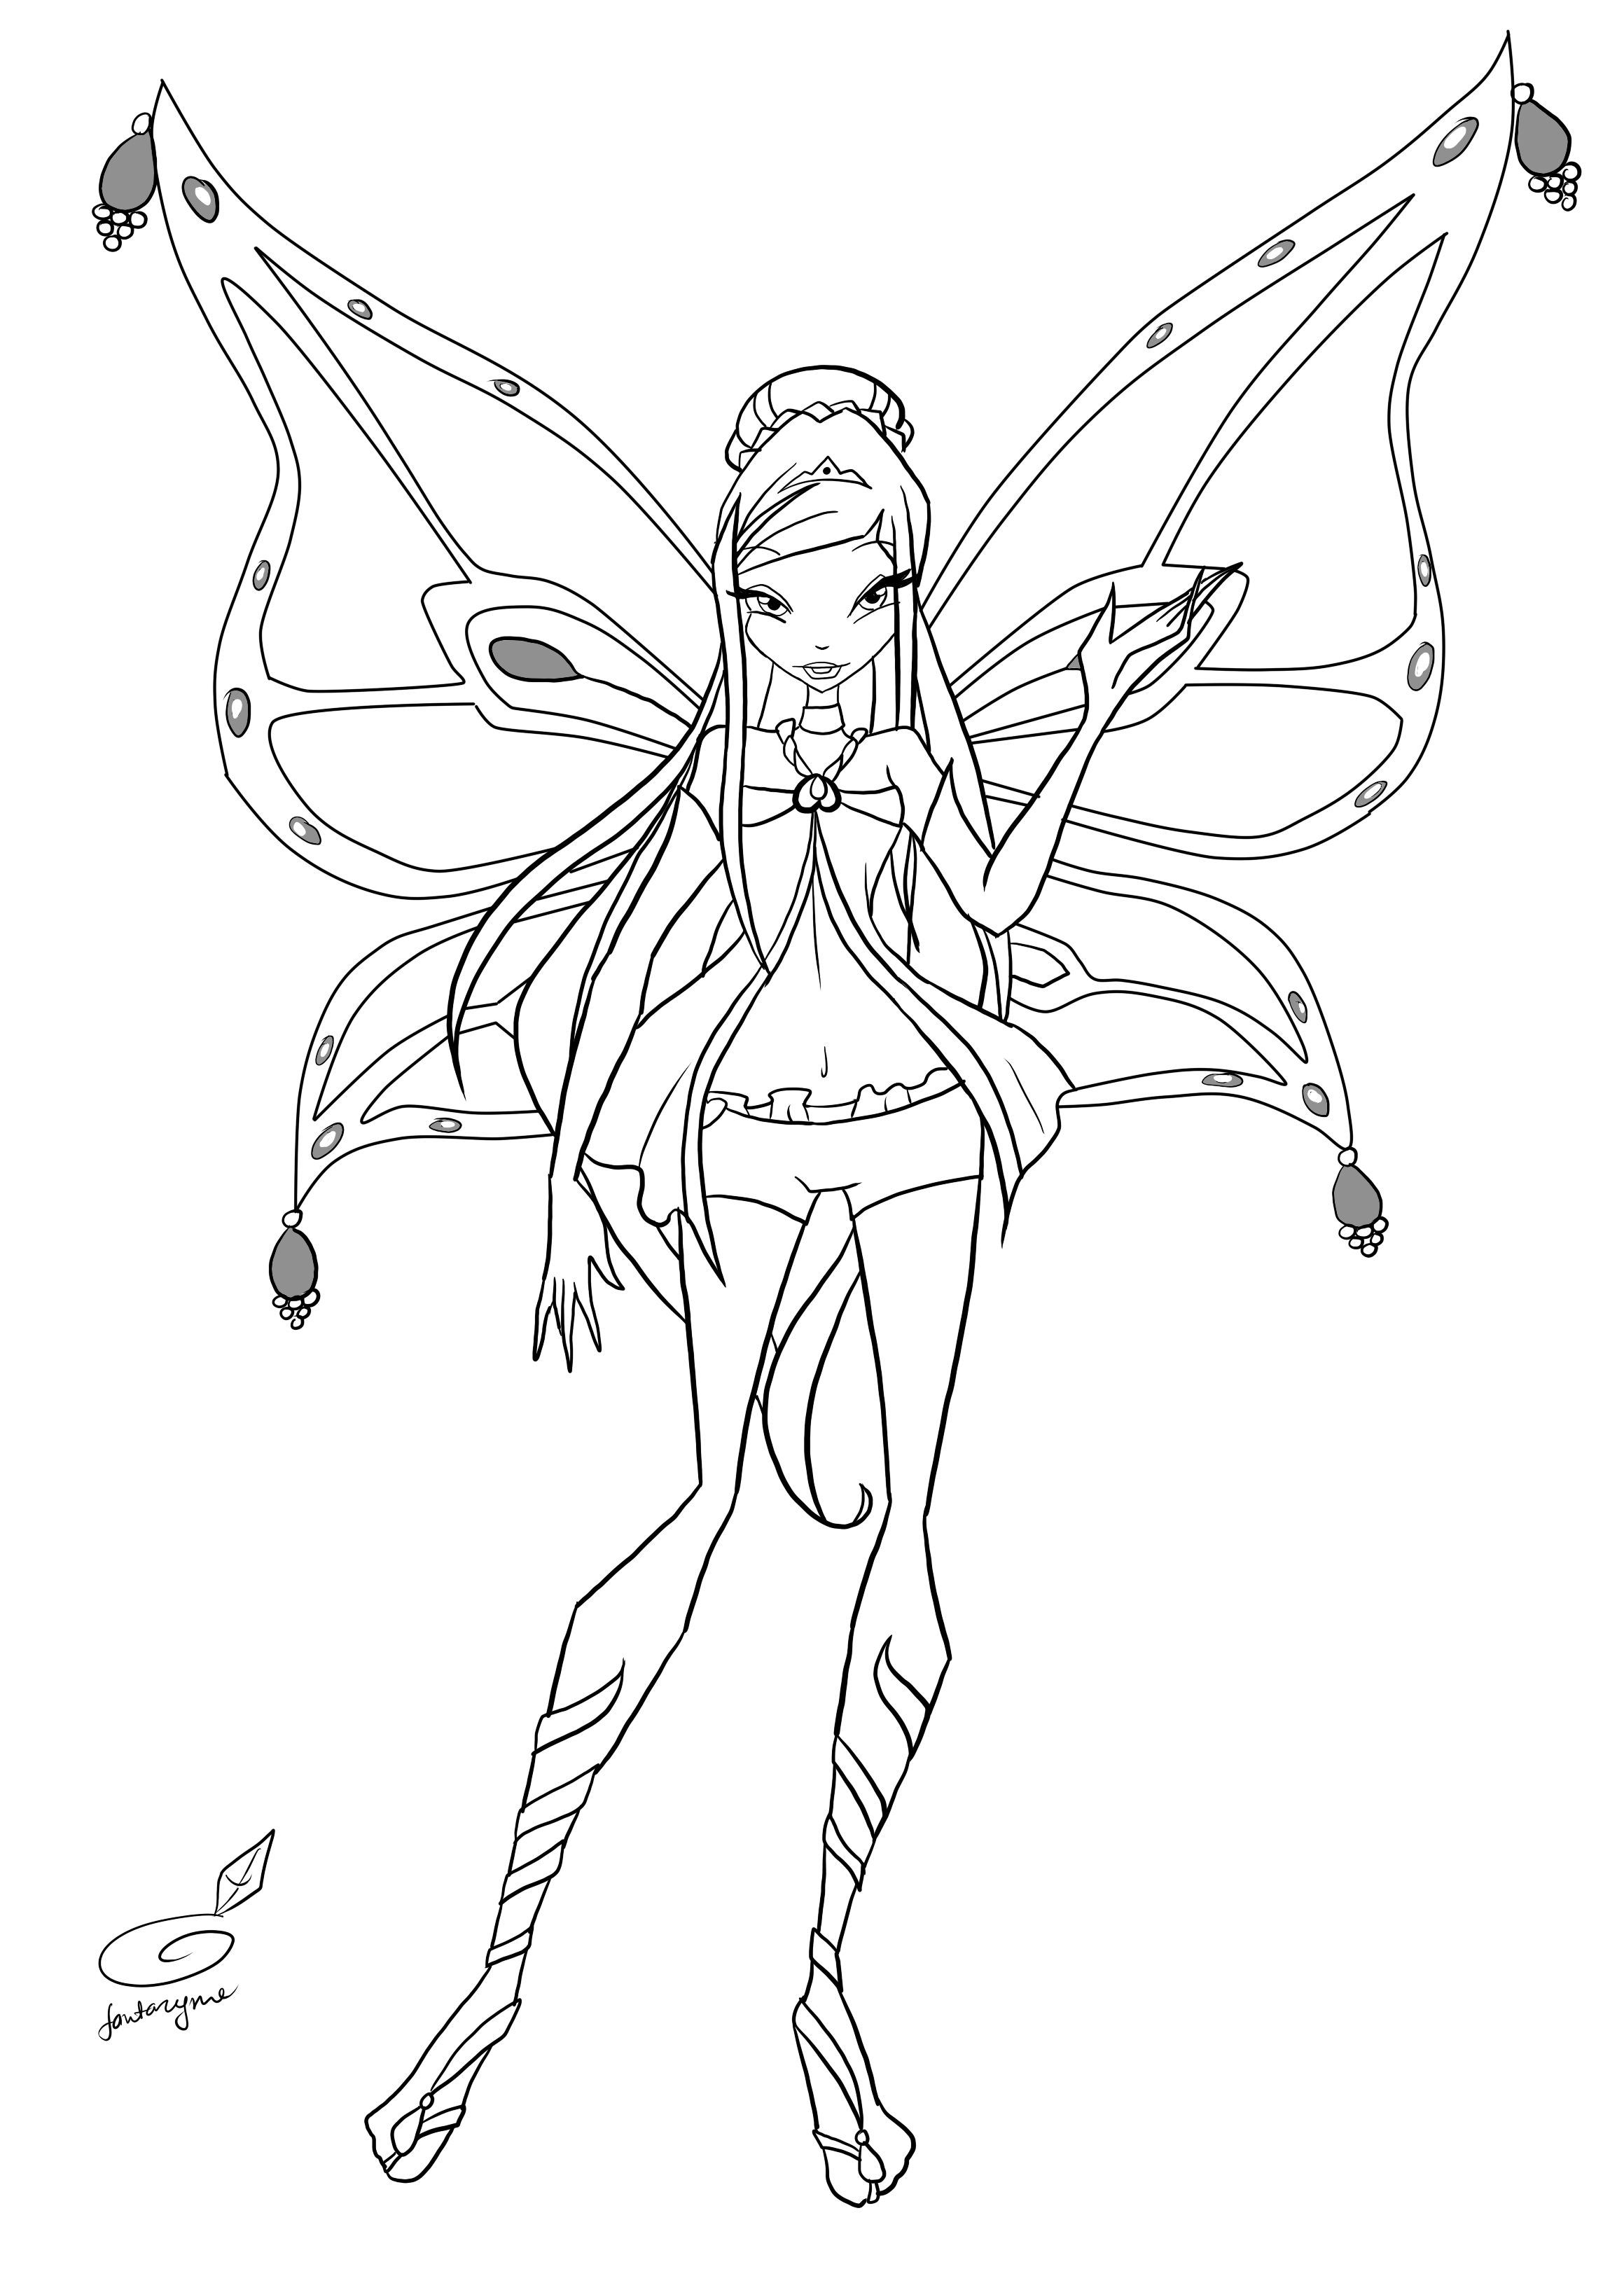 winx club colouring pages believix get this kids39 printable winx club coloring pages x4lk2 club pages winx colouring believix